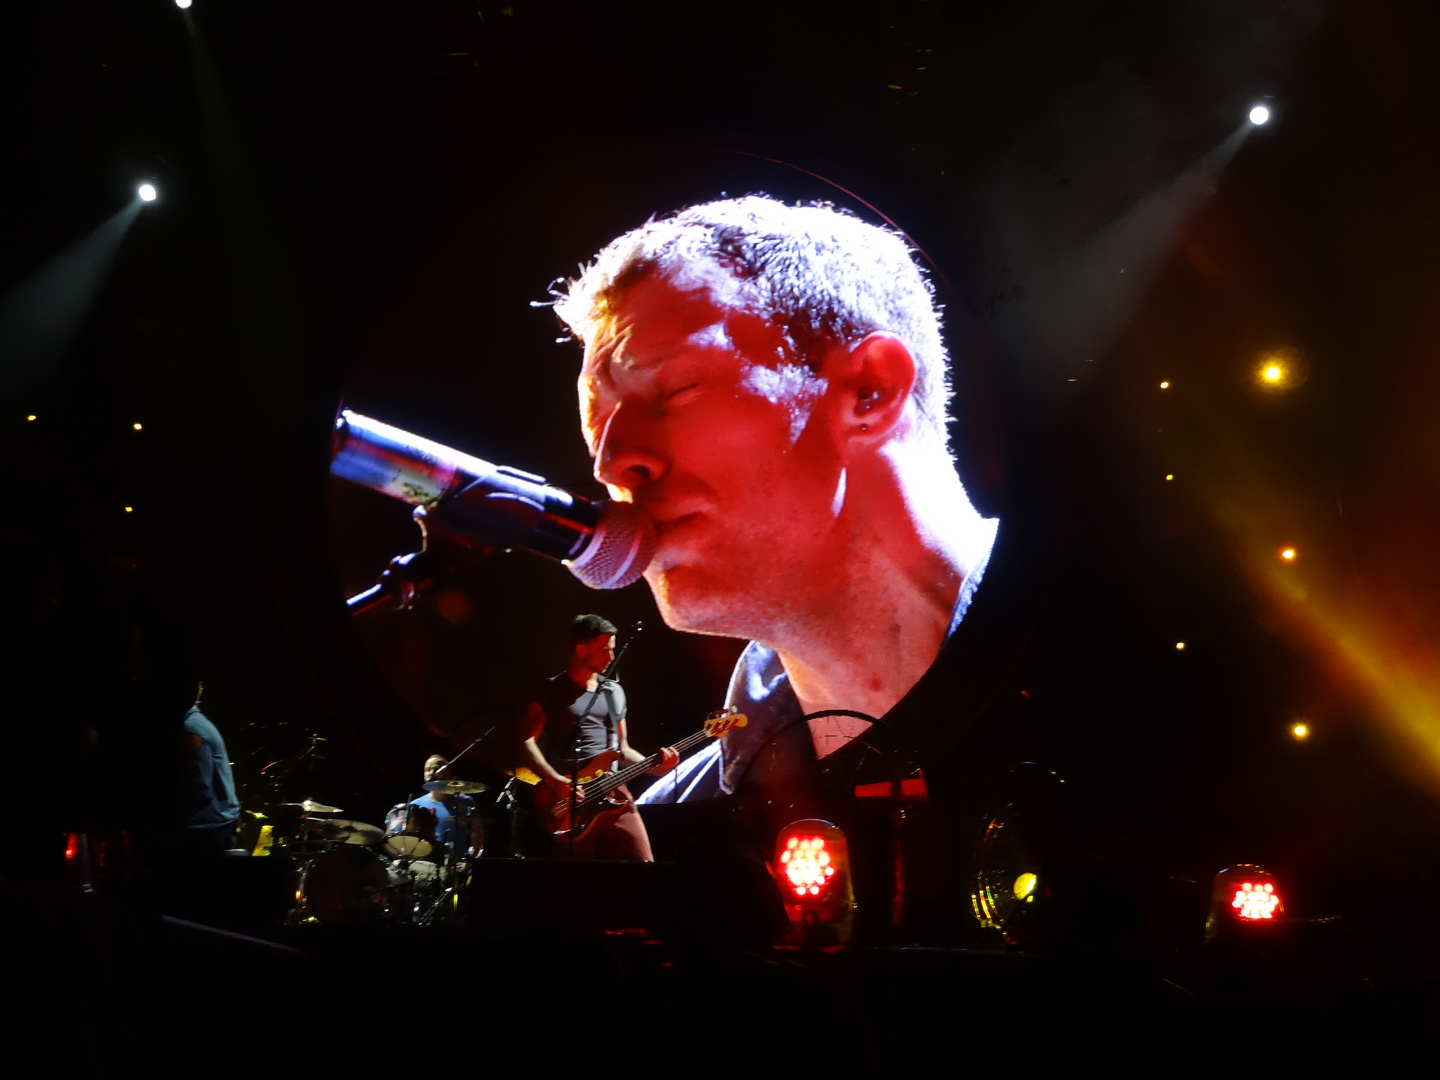 Chris Martin from Coldplay, Hannover 22.09.2012, mylo xyloto Tour